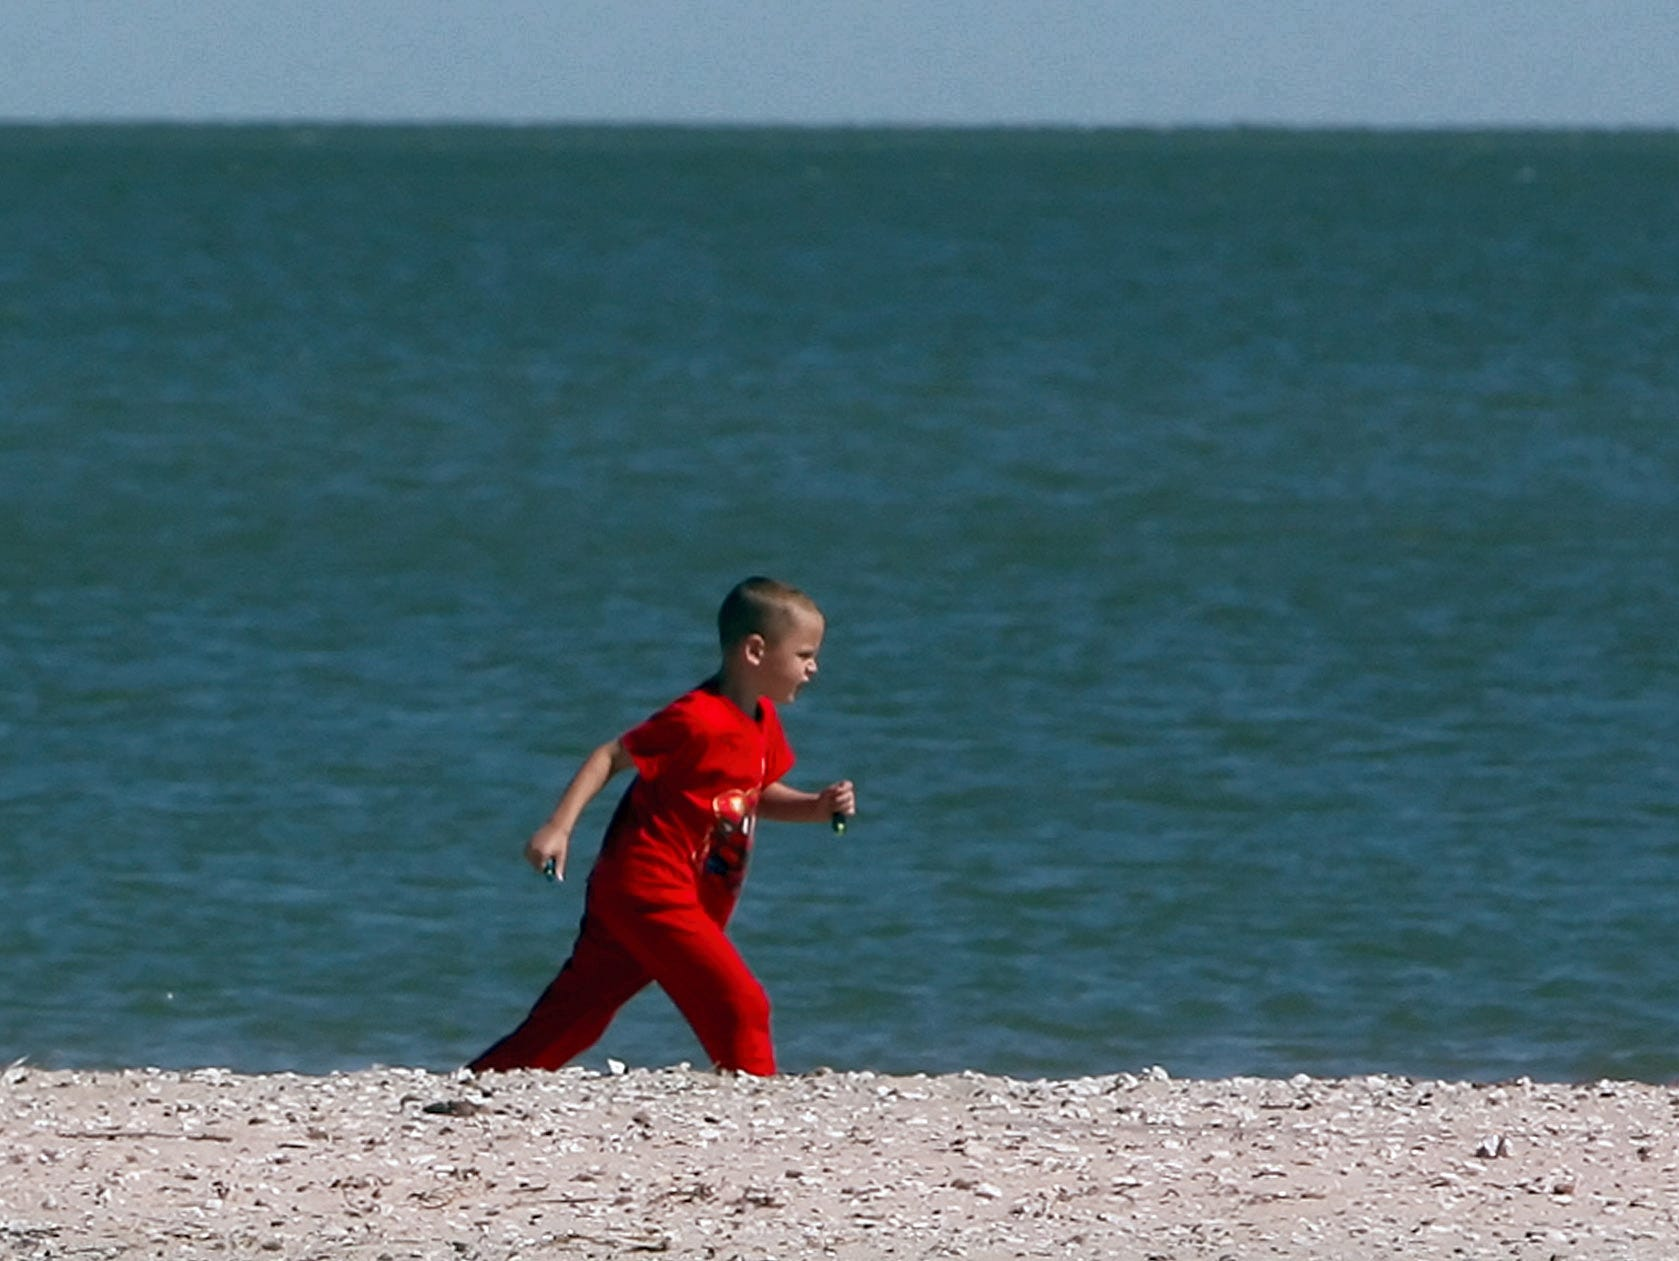 Cody Davidson, 5, visiting from Magnolia, enjoys the cool and sunny weather as he runs down McGee Beach to catch up with his family as they walk along the shoreline Tuesday, October 23, 2007.